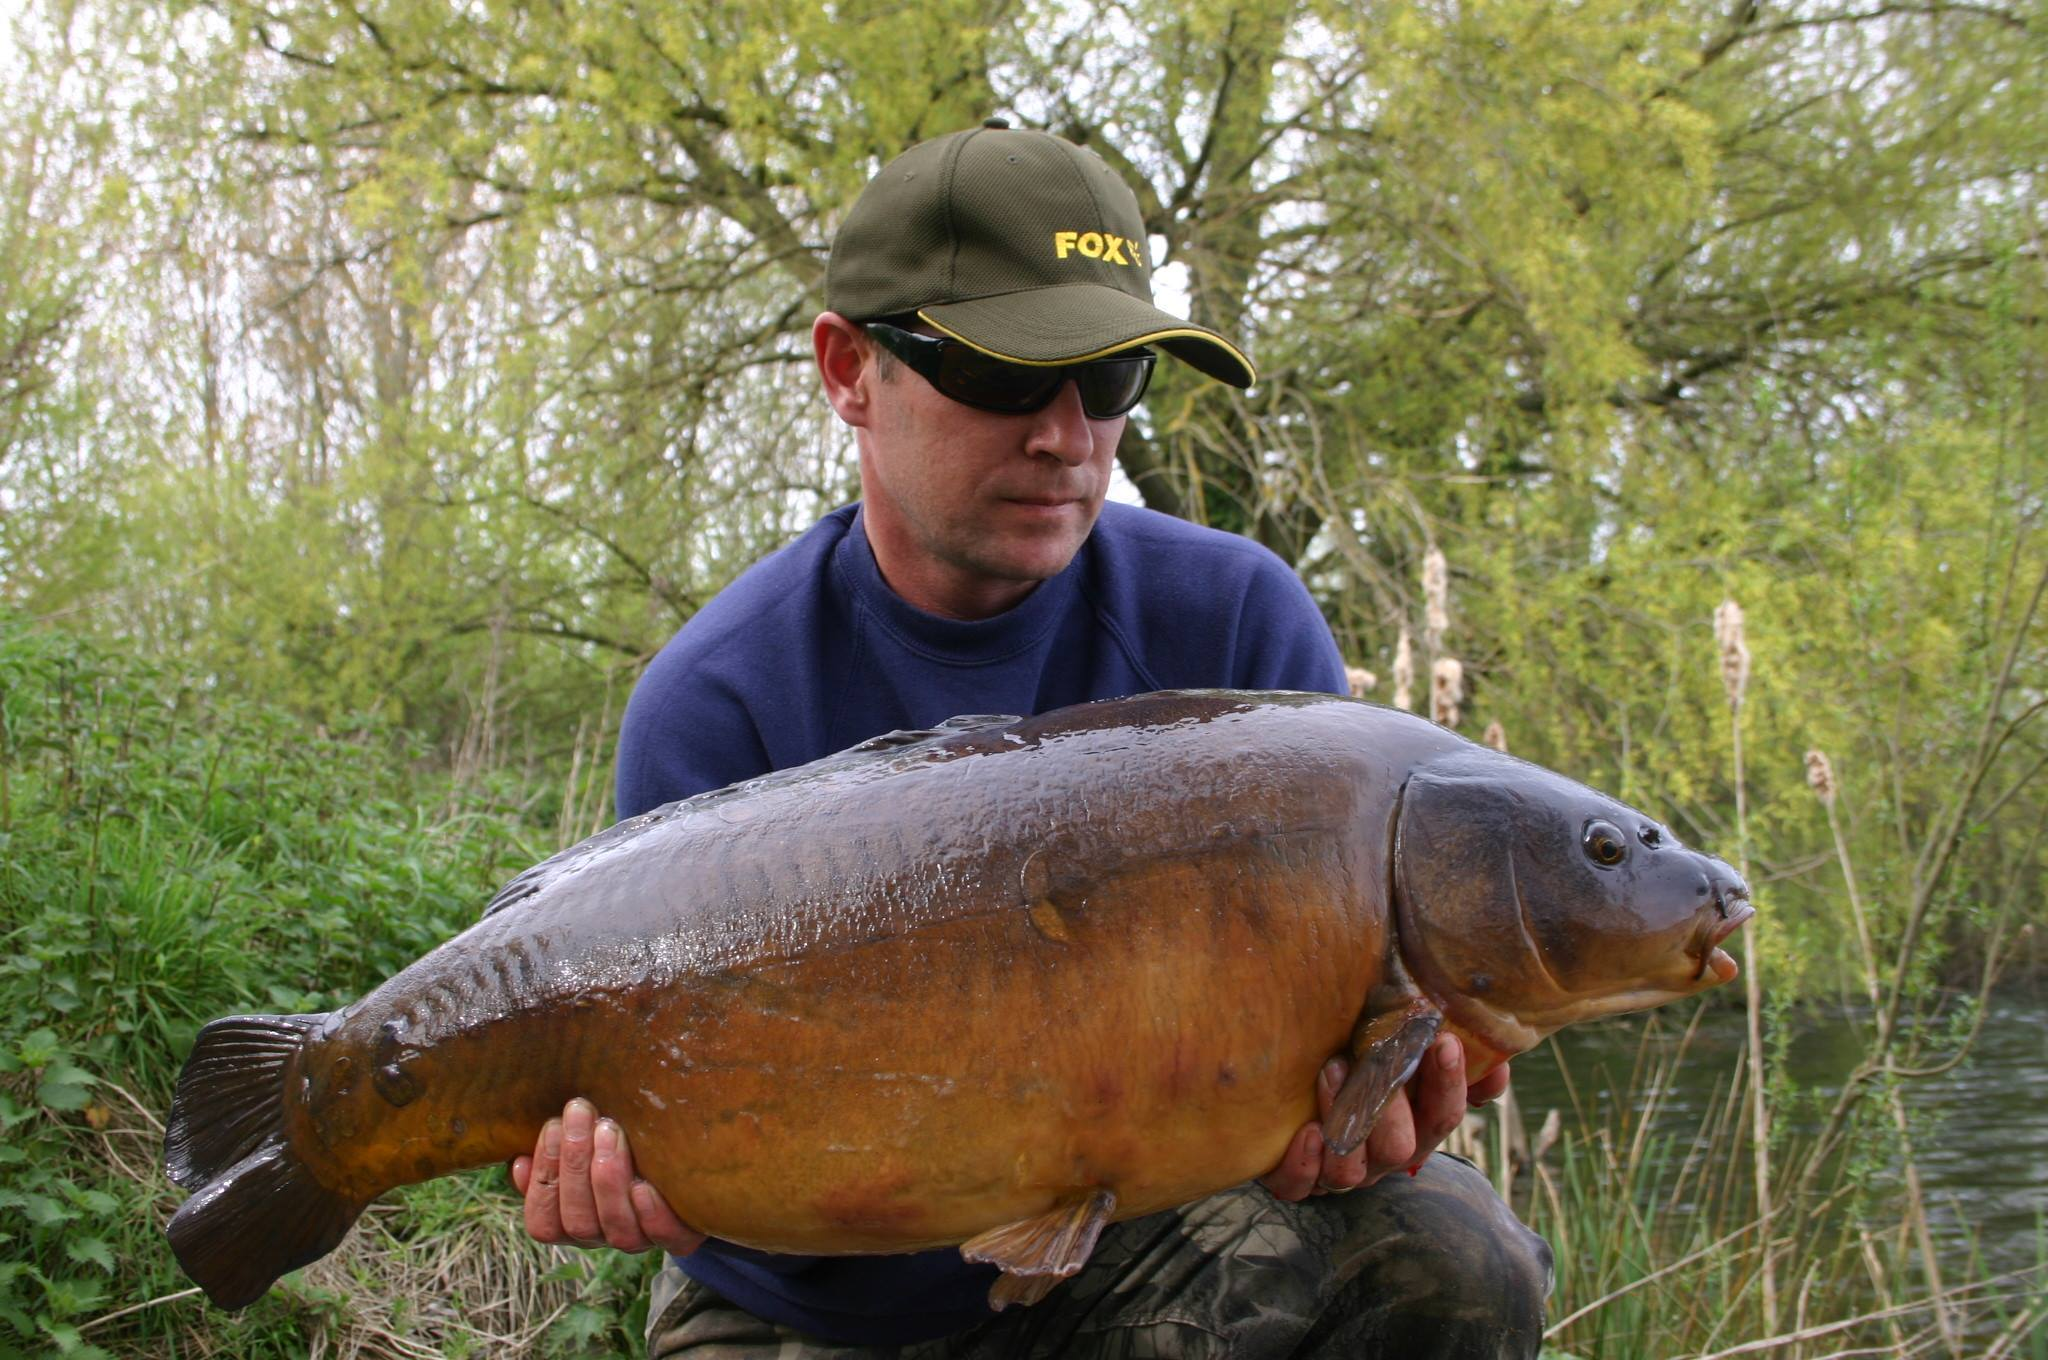 Pop up down carp method